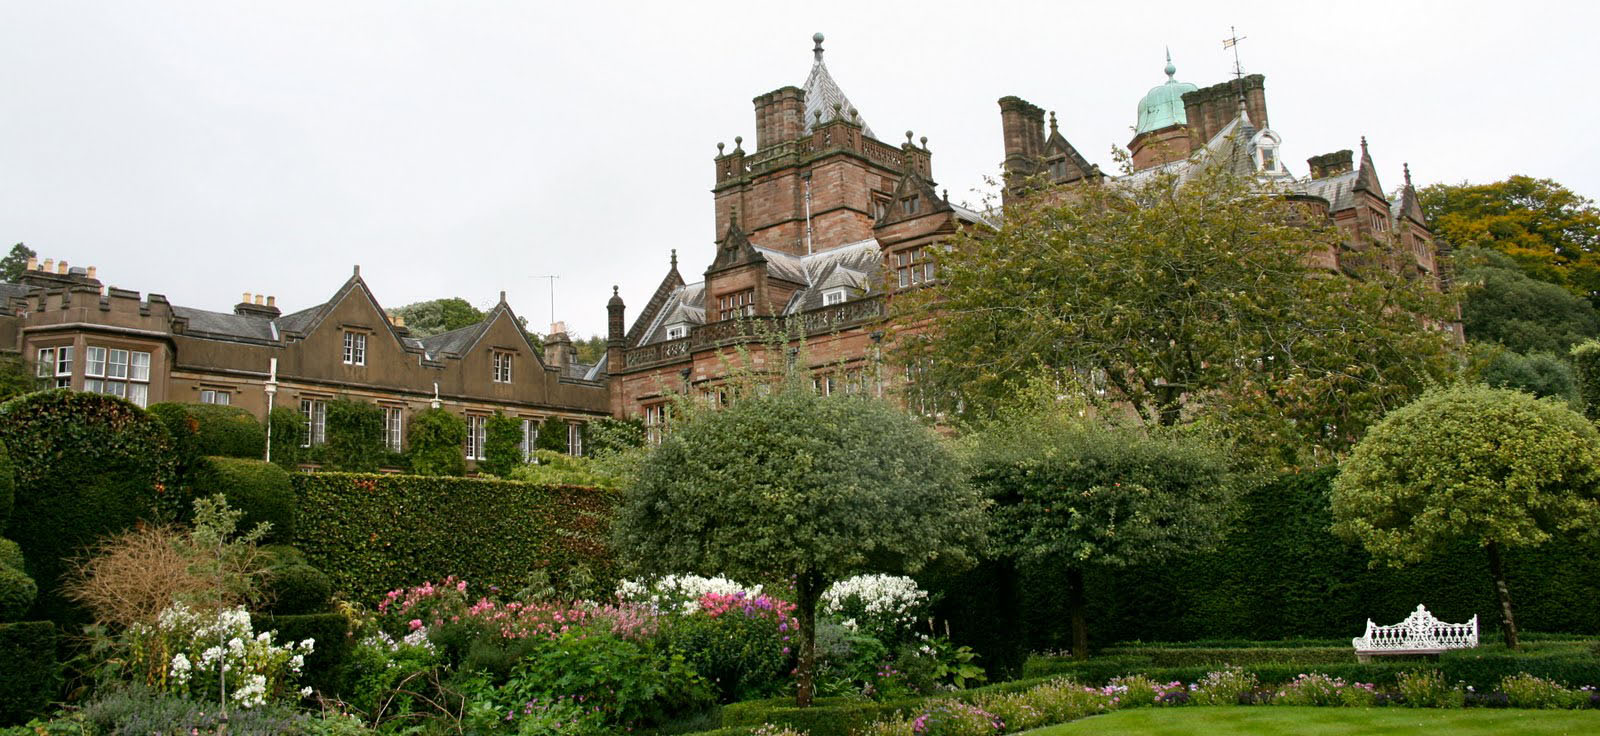 HolkerHall4